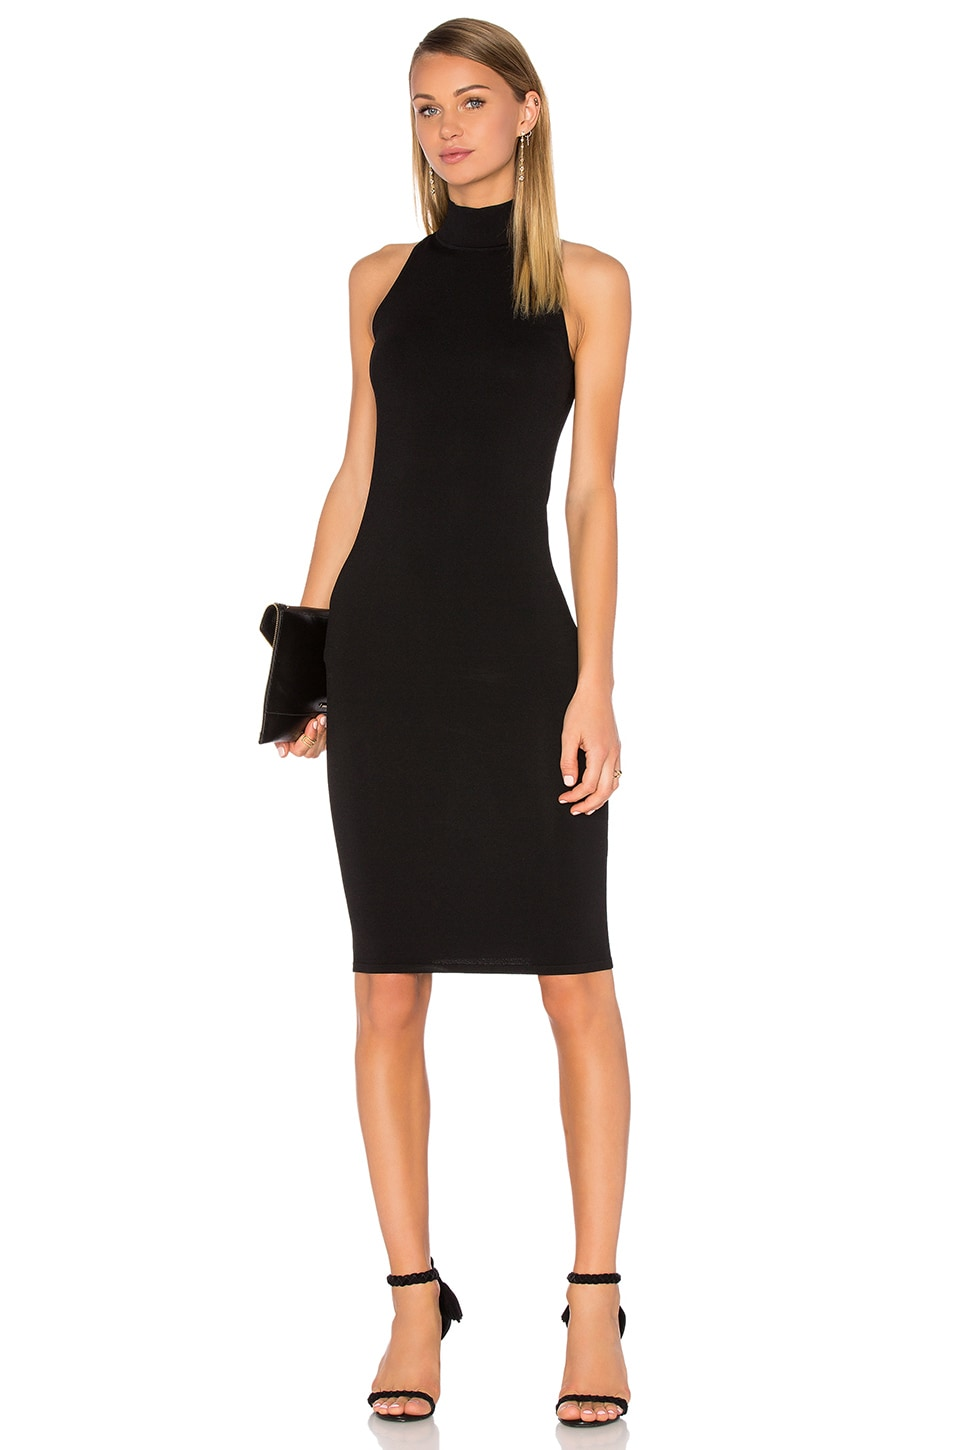 Atlantis Knit Dress by Central Park West